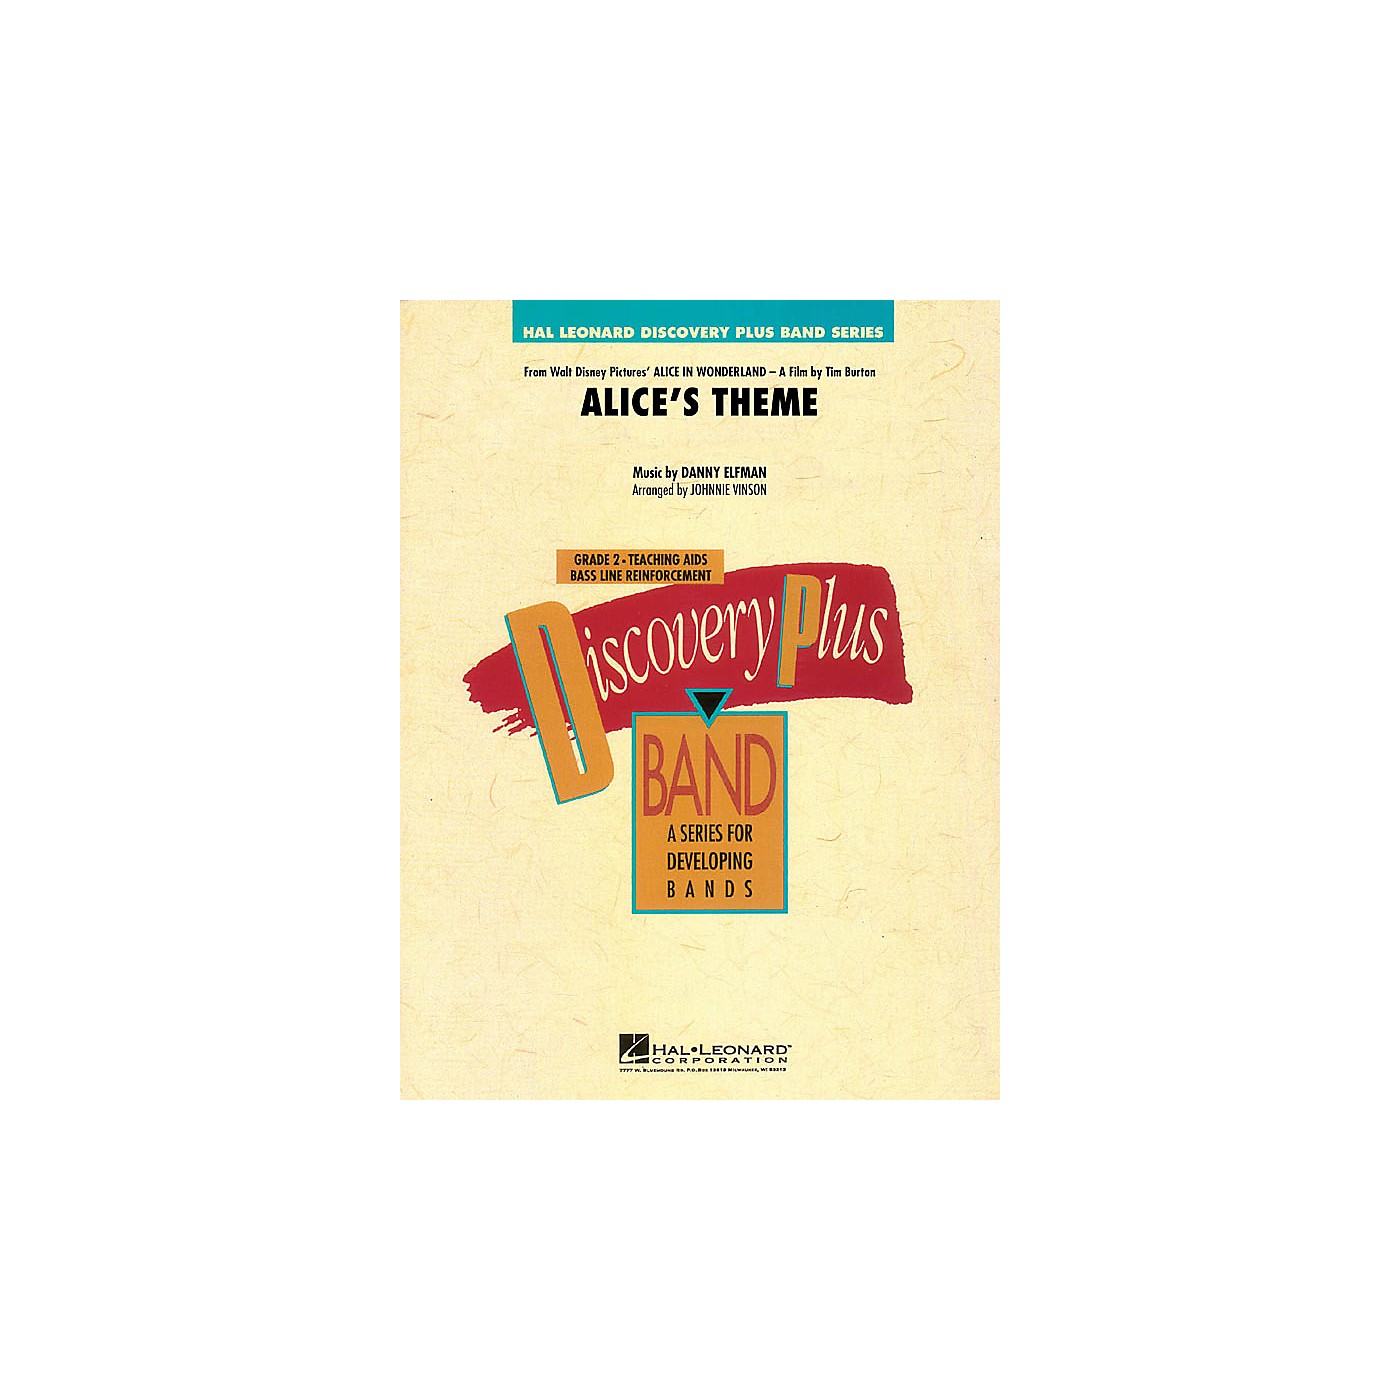 Hal Leonard Alice's Theme (from Alice in Wonderland) - Discovery Plus Band Level 2 arranged by Johnnie Vinson thumbnail